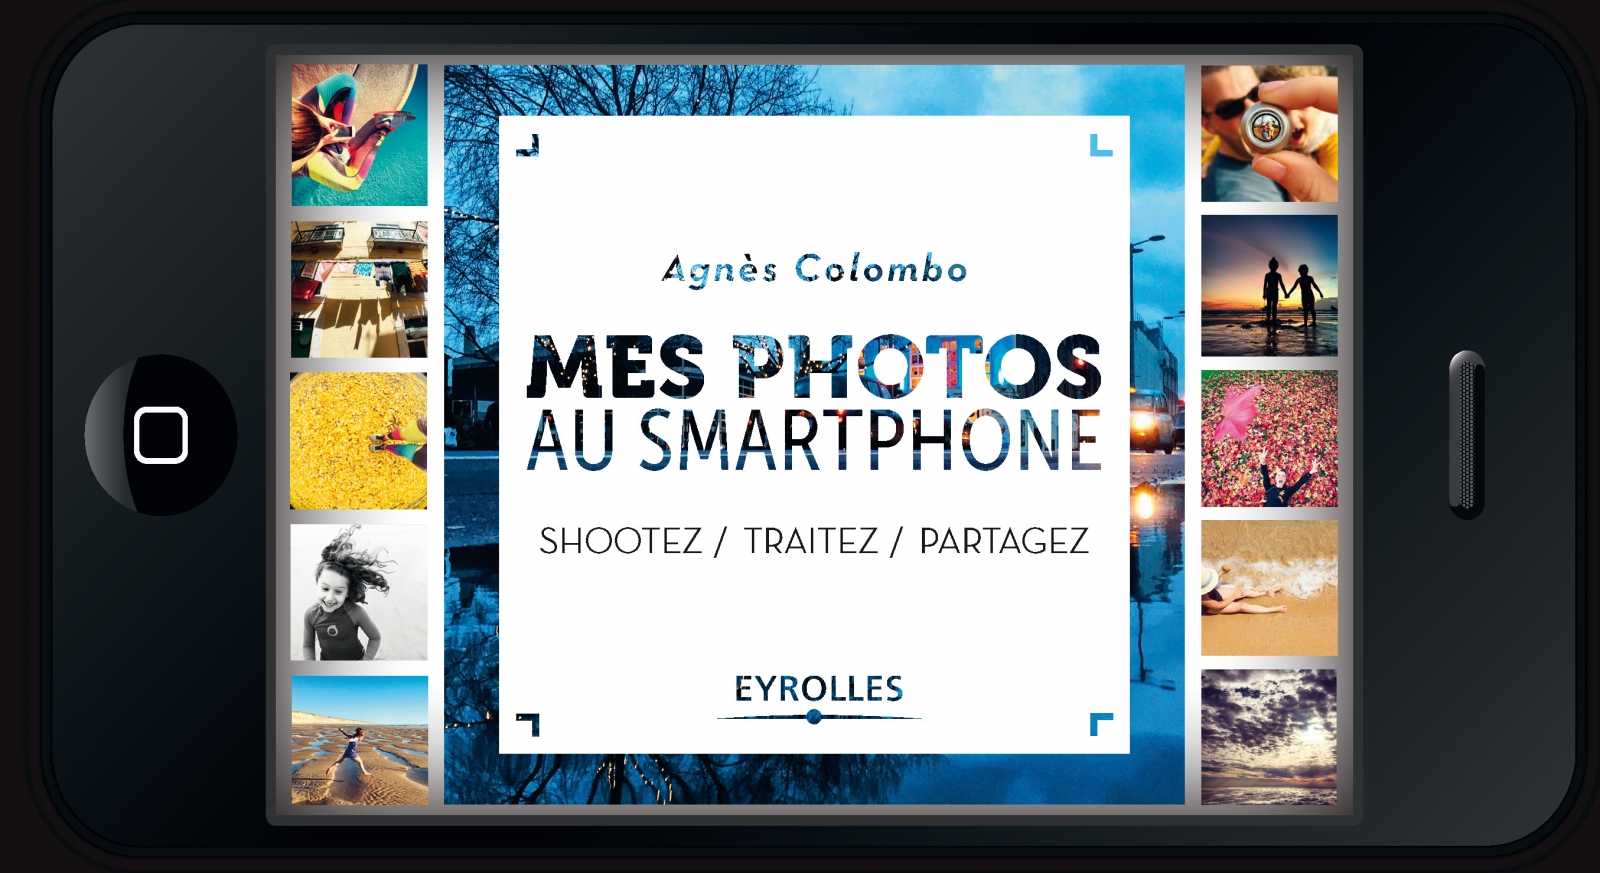 mes-photos-au-smartphone-eyrolles